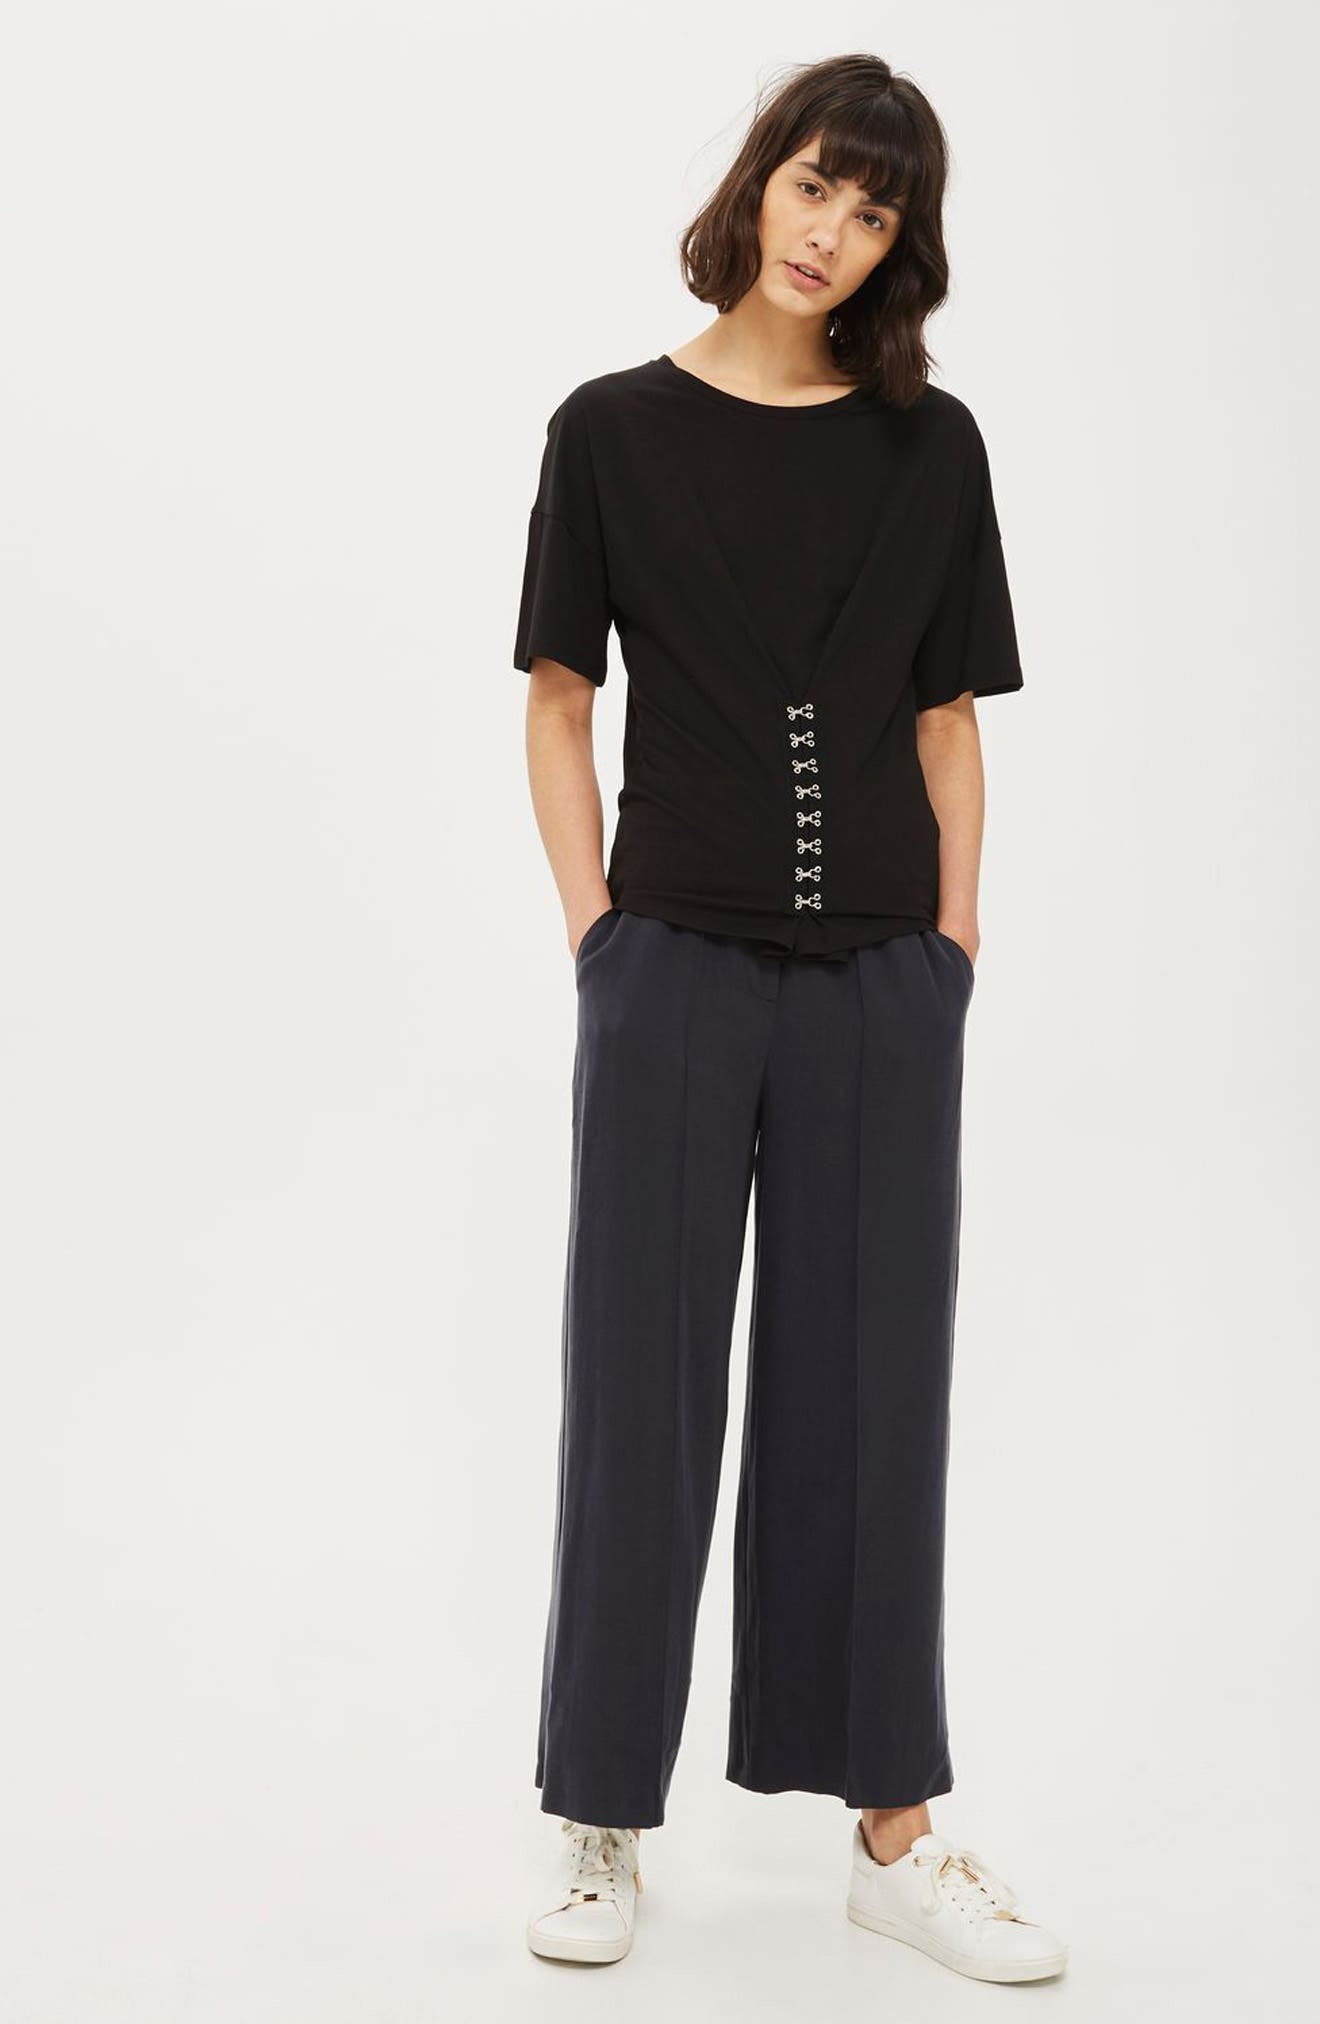 Topshop Tee & Trousers Outfit with Accessories